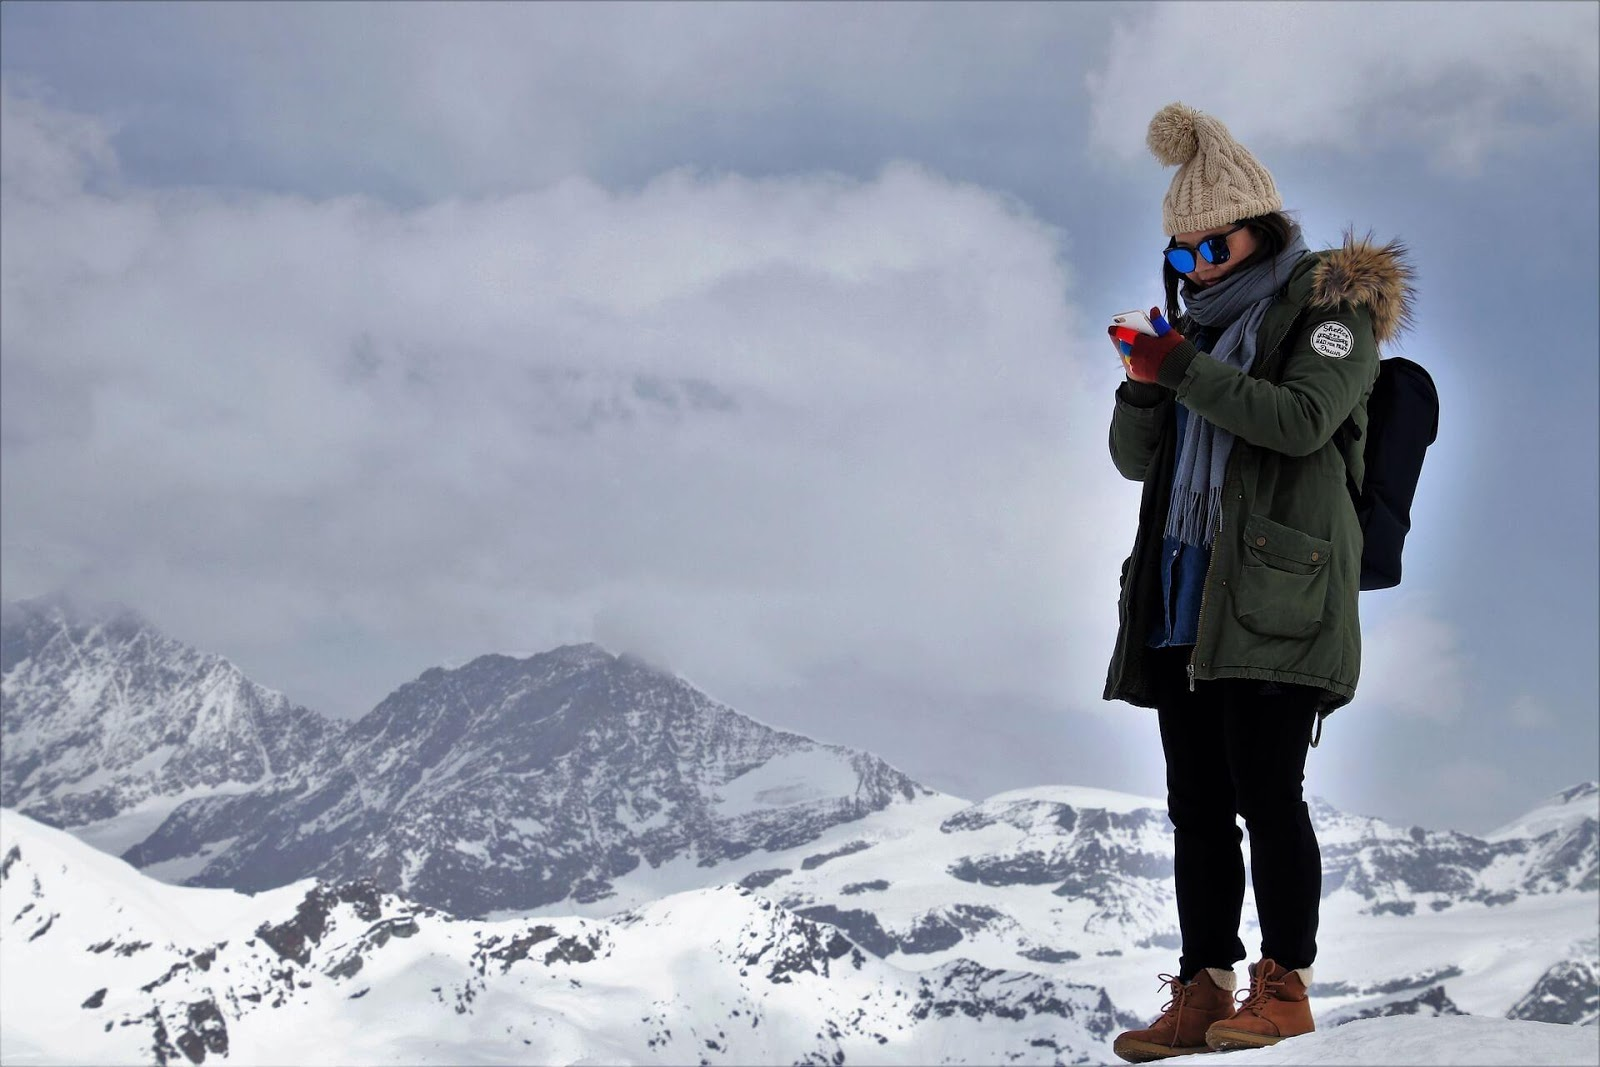 What Shoes to Wear in Snow? Here are 4 Elements To Look Out For